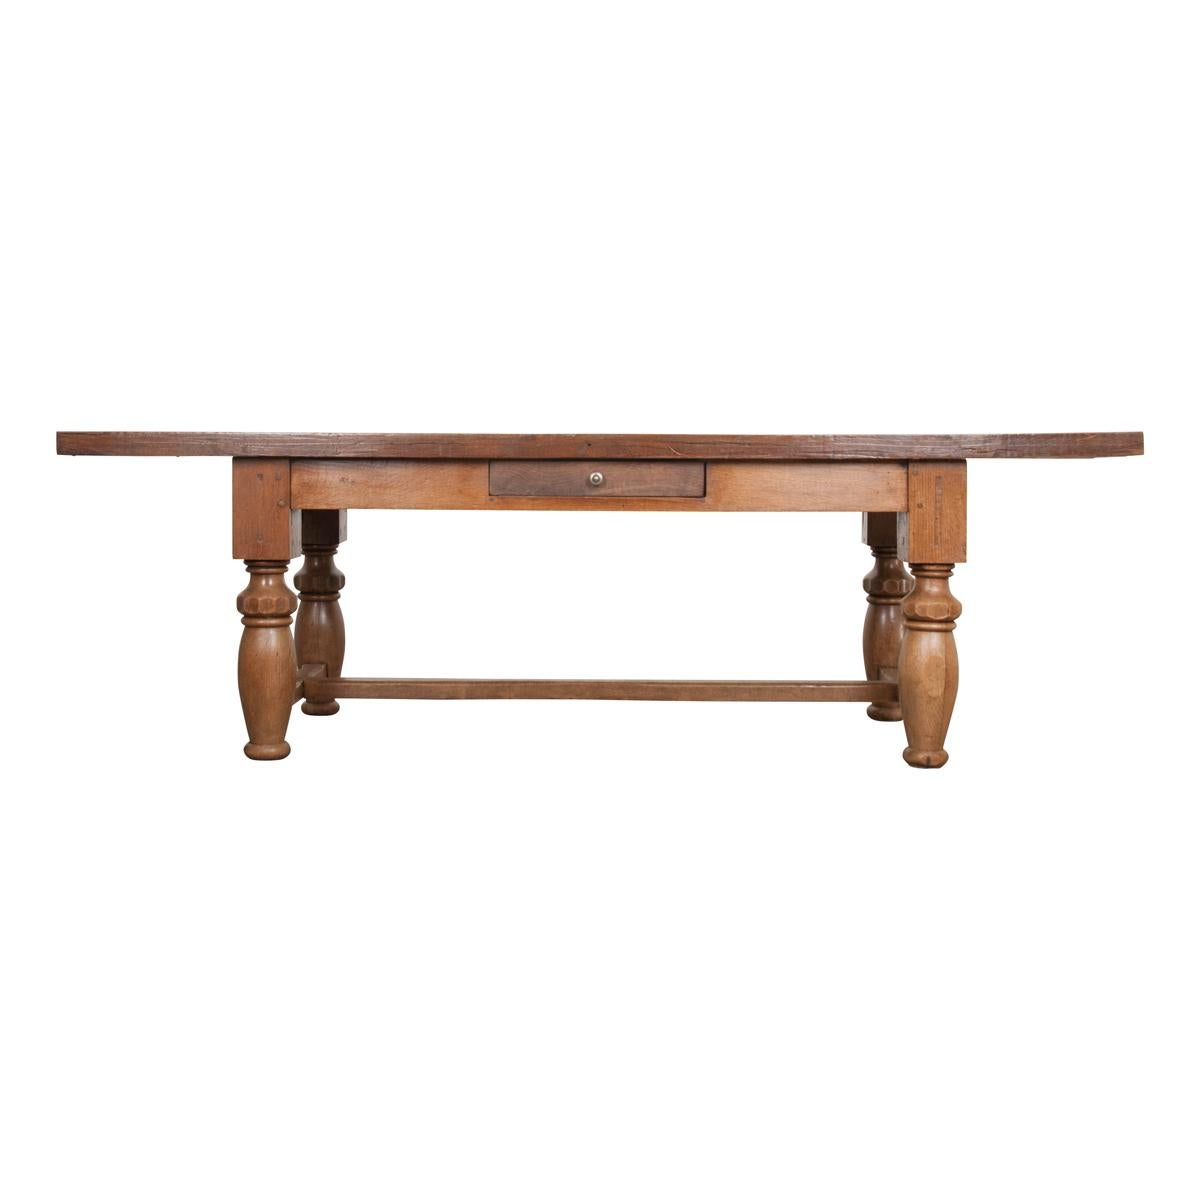 French 19th Century Refectory-Style Oak Farmhouse Table